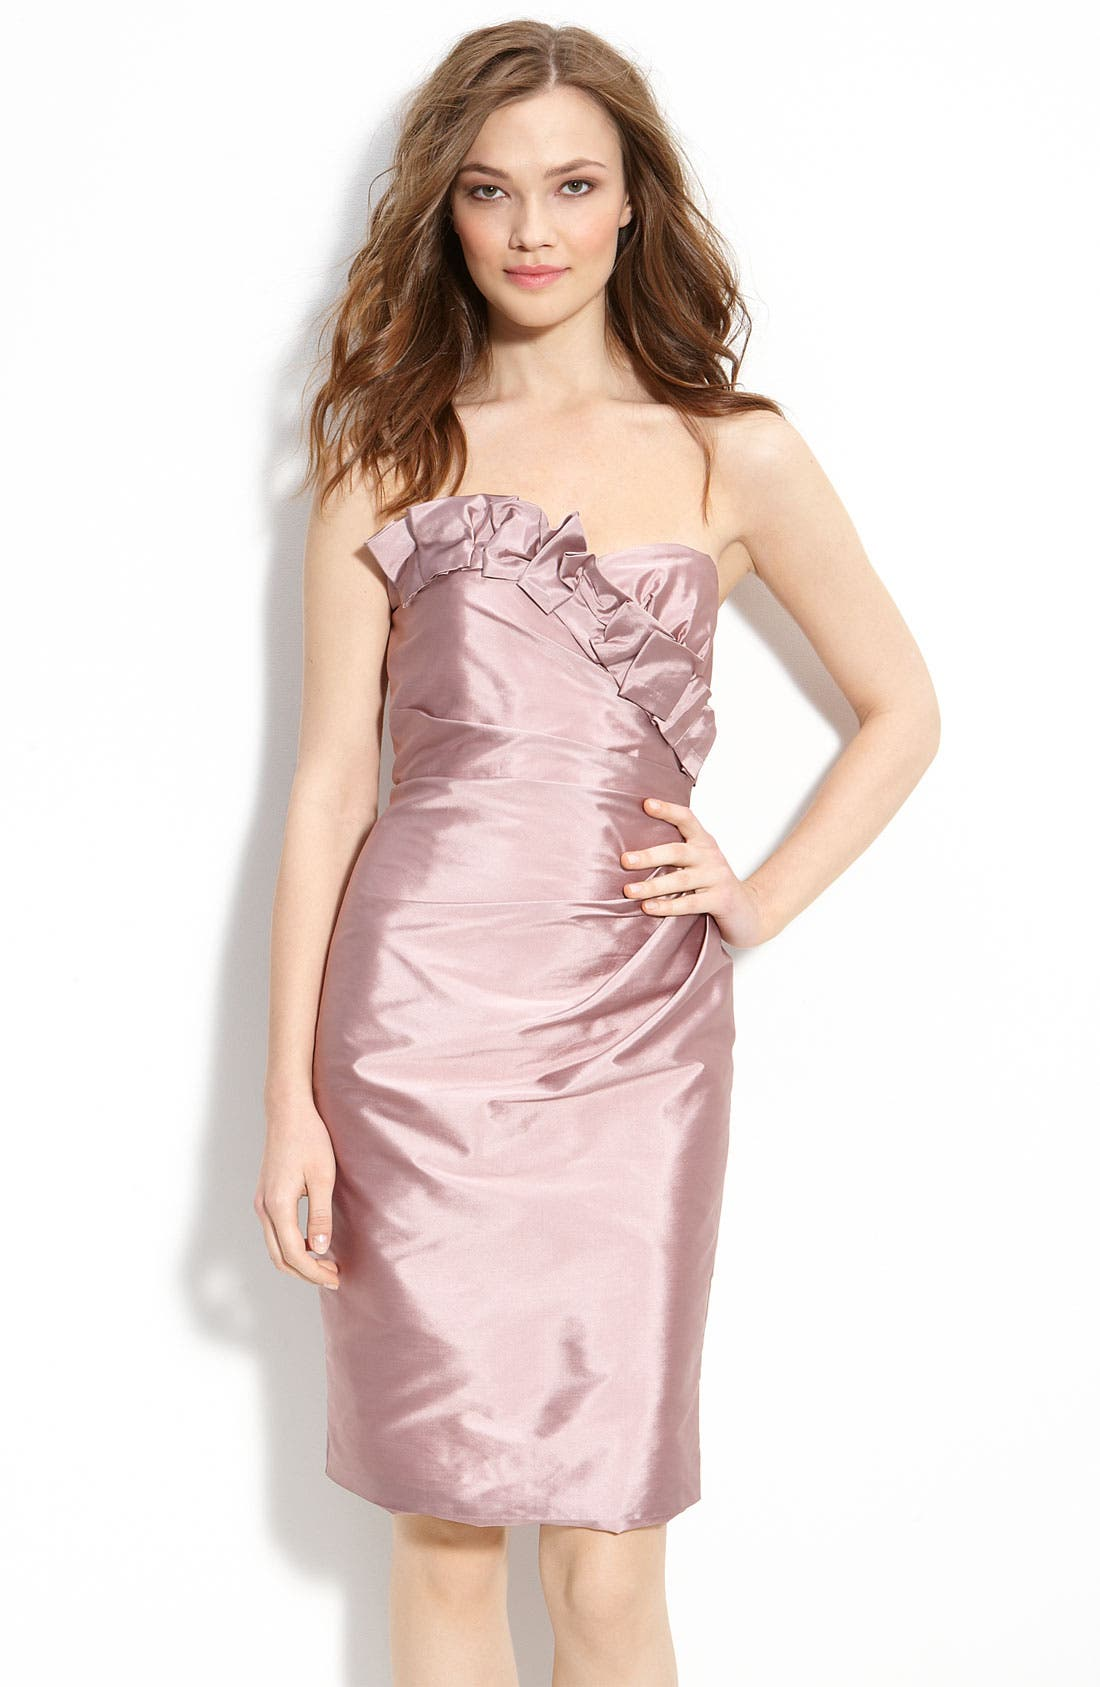 Alternate Image 1 Selected - ML Monique Lhuillier Bridesmaids Satin Ruffle Trim Strapless Dress (Nordstrom Exclusive)